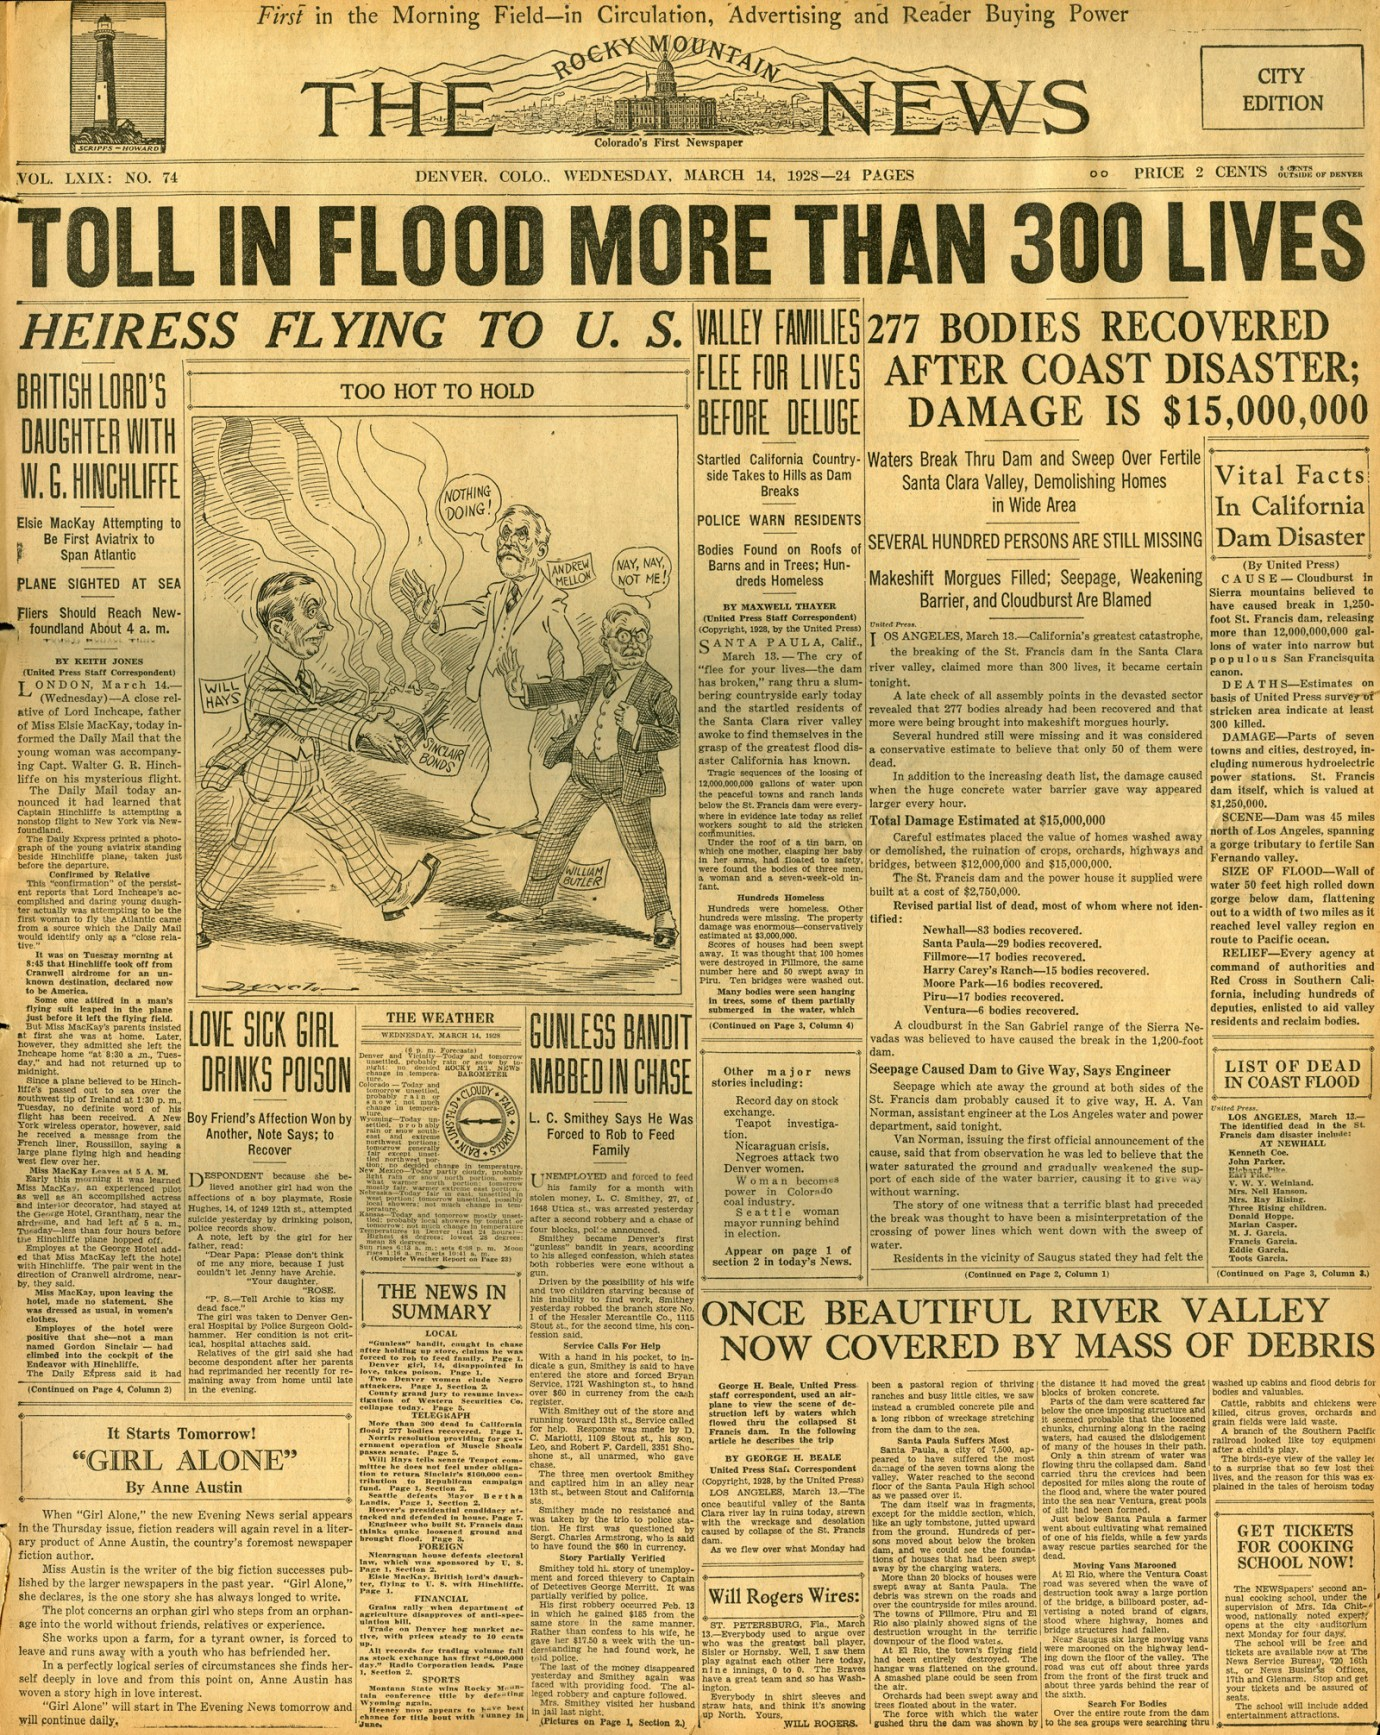 St. Francis Dam Disaster.  THE ROCKY MOUNTAIN NEWS (NEWSPAPER),  WEDNESDAY, MARCH 14, 1928